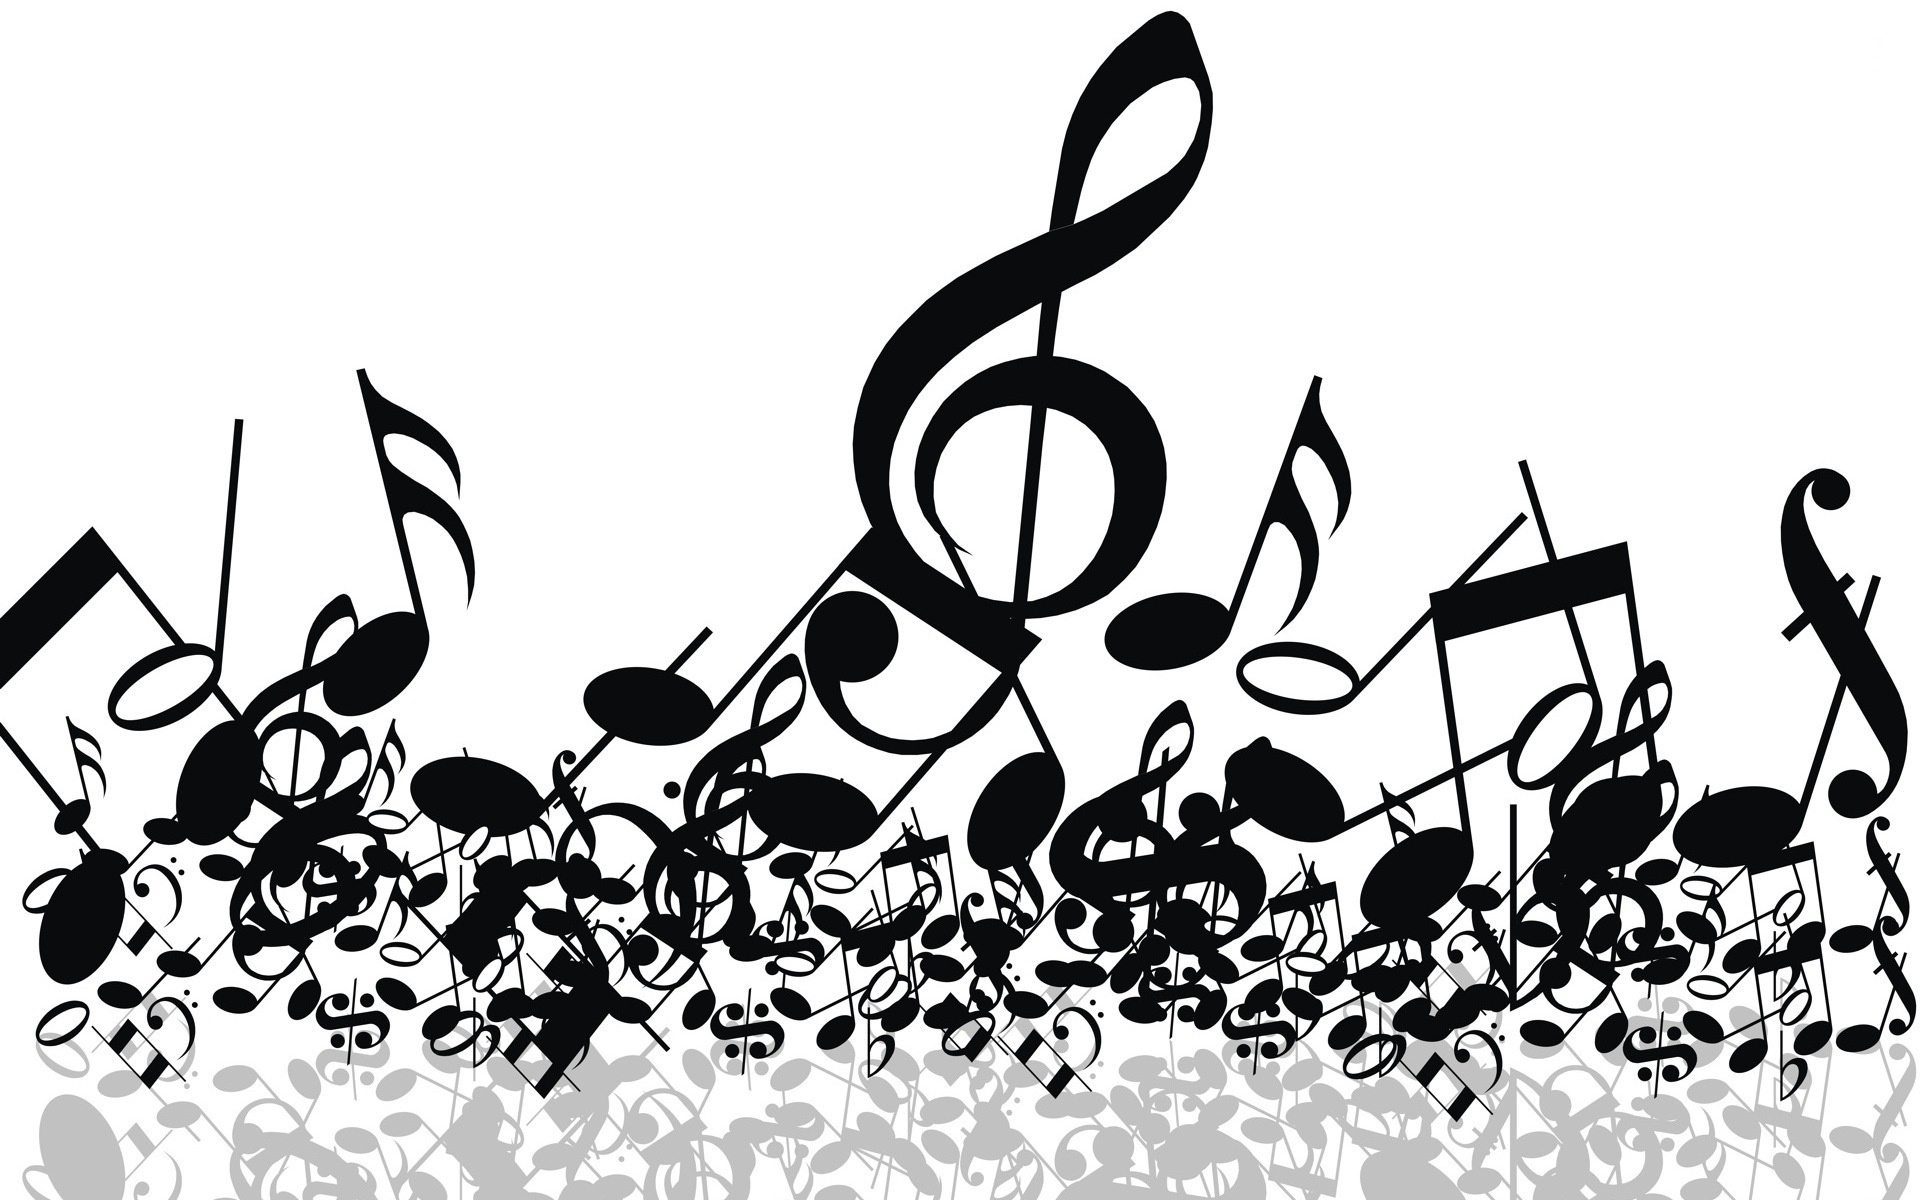 Spring band music clipart black and white clip art library stock Free Concert Cliparts, Download Free Clip Art, Free Clip Art on ... clip art library stock